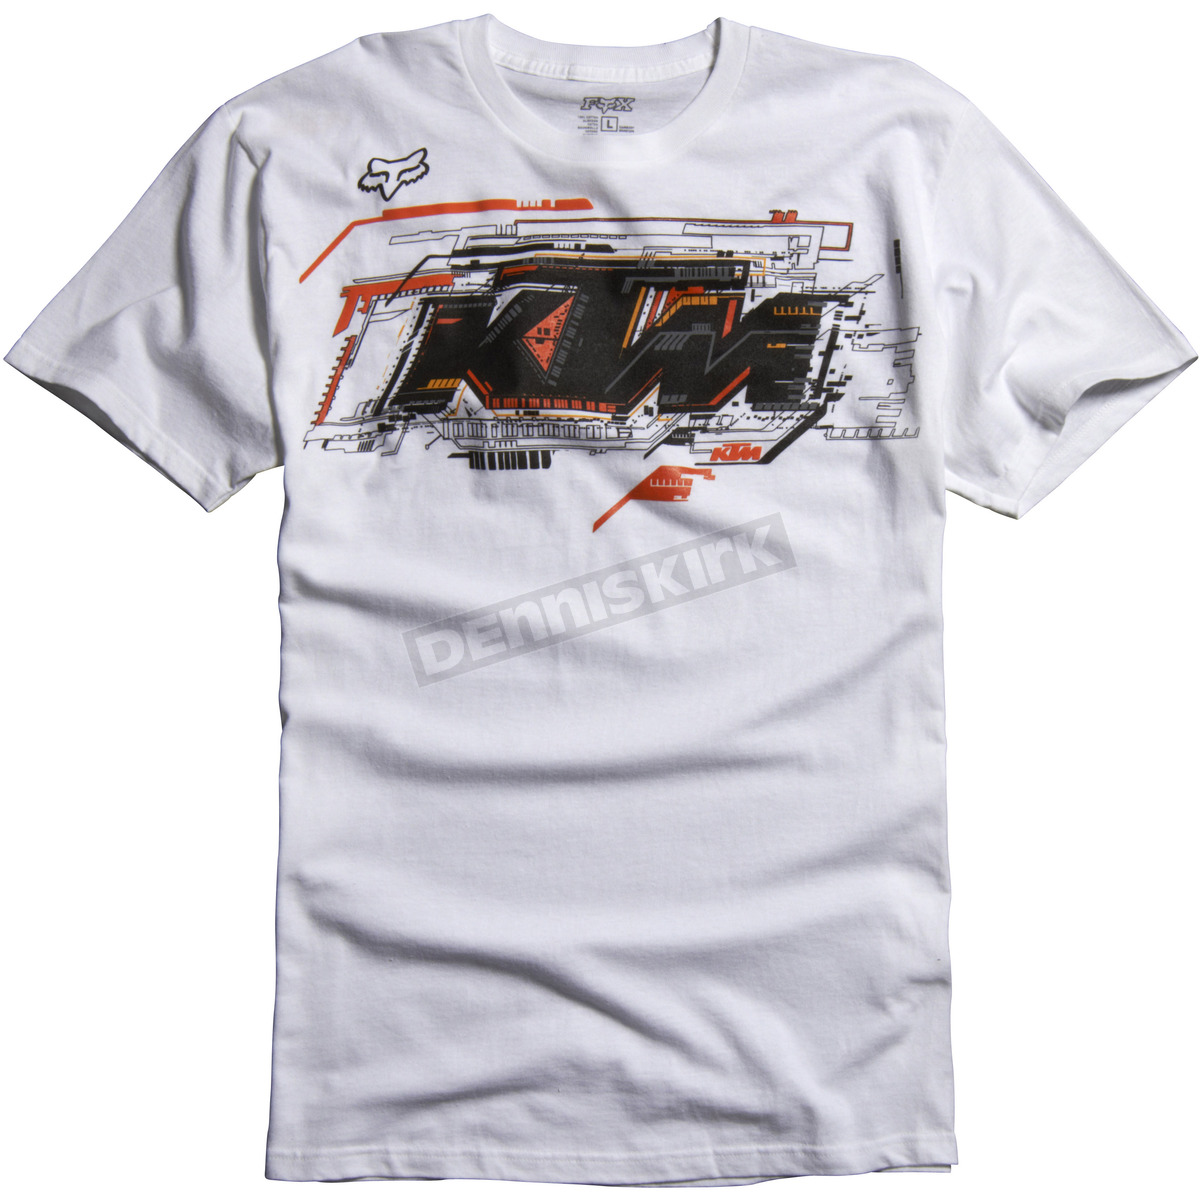 fox kids white ktm layout t shirt 07383 008 s atv dirt bike dennis kirk inc. Black Bedroom Furniture Sets. Home Design Ideas